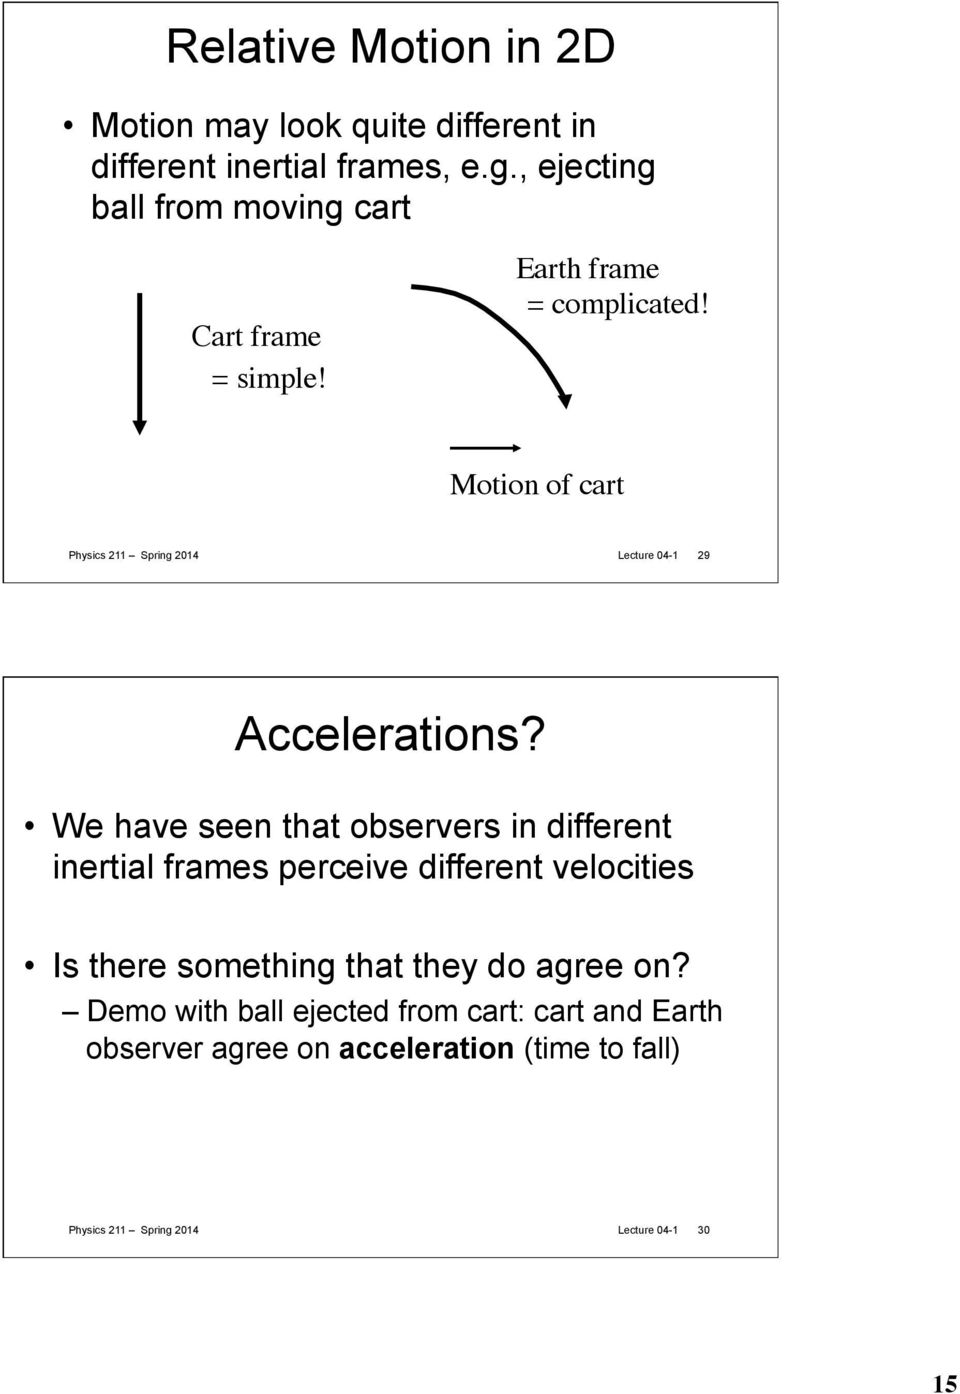 Motion of cart Physics 211 Spring 2014 Lecture 04-1 29 ccelerations?